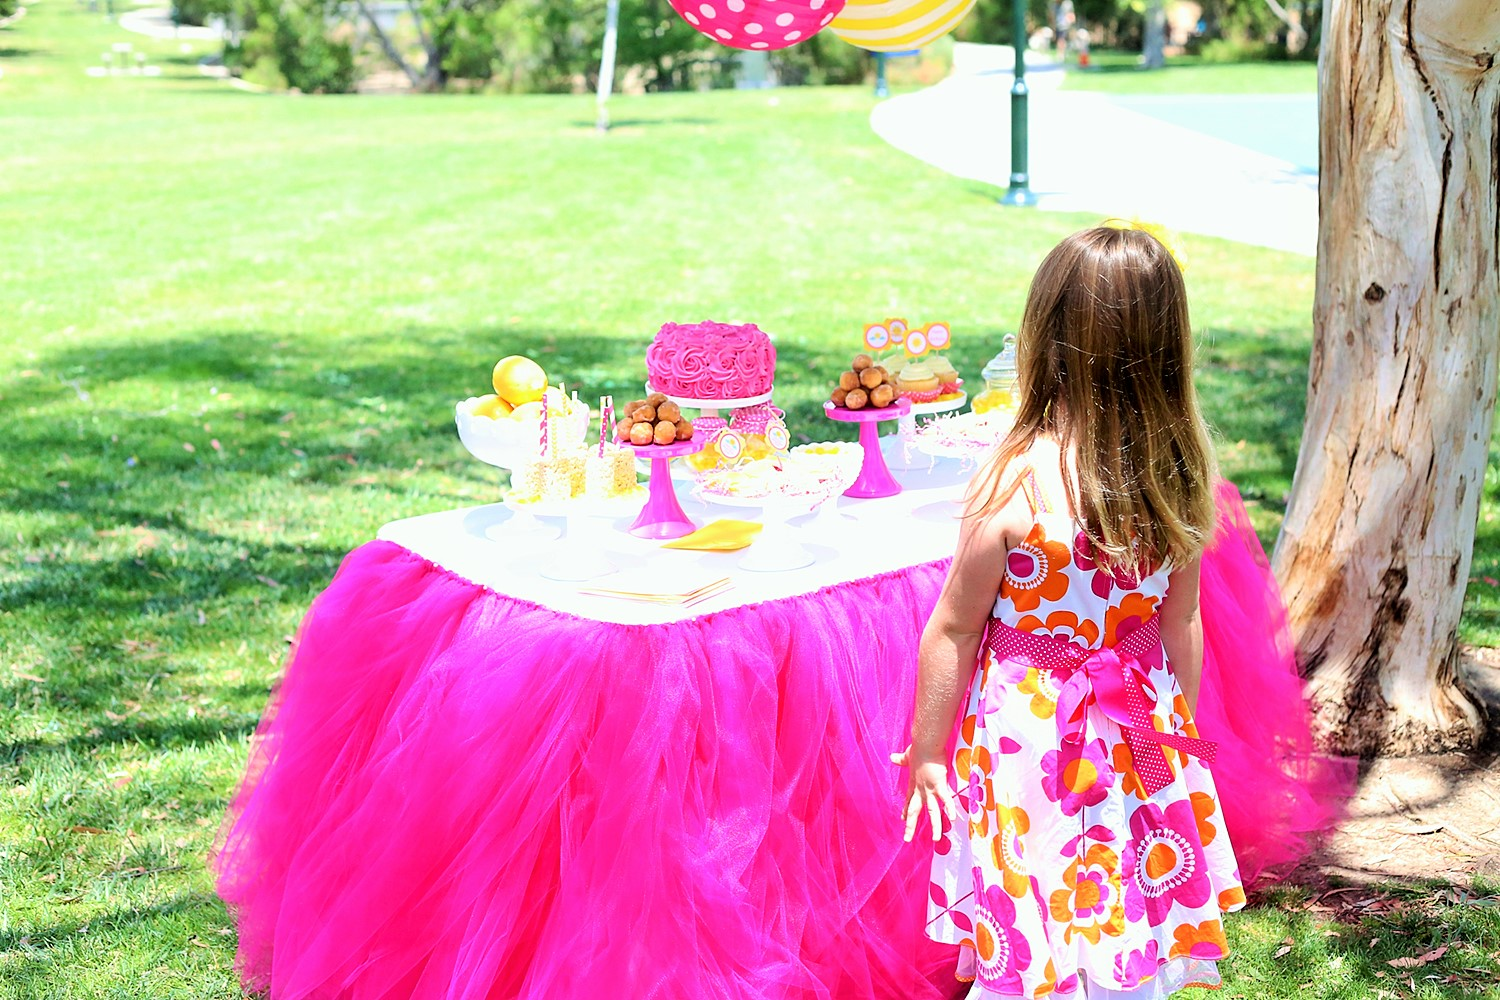 sunshine and lemonade party with custom table skirt and sweets